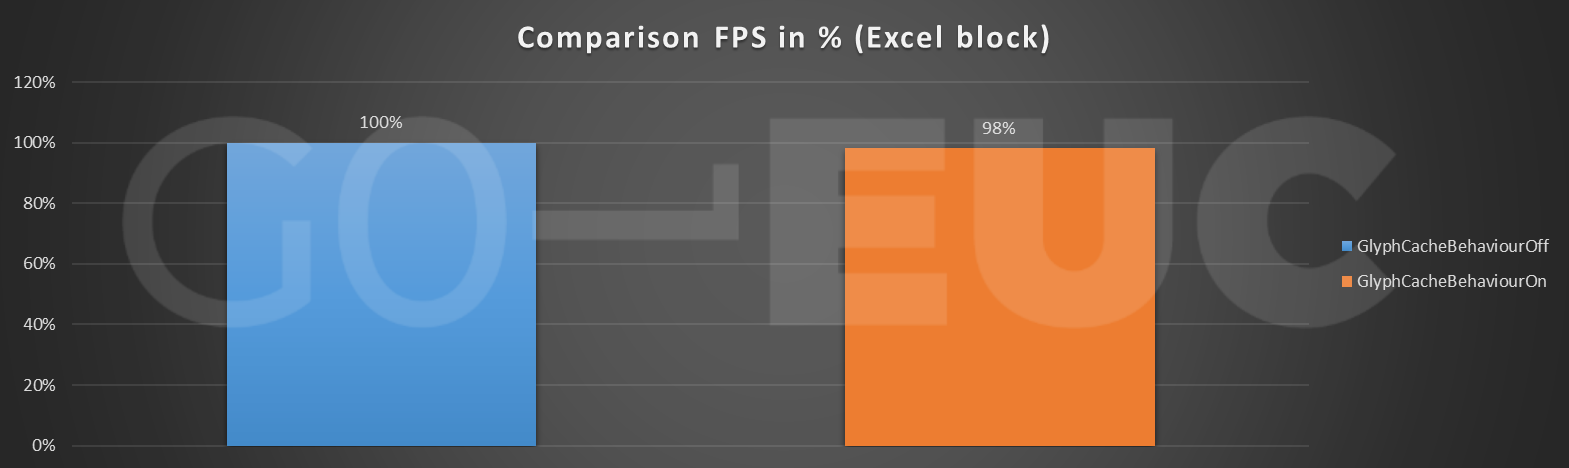 fps-compare-excel